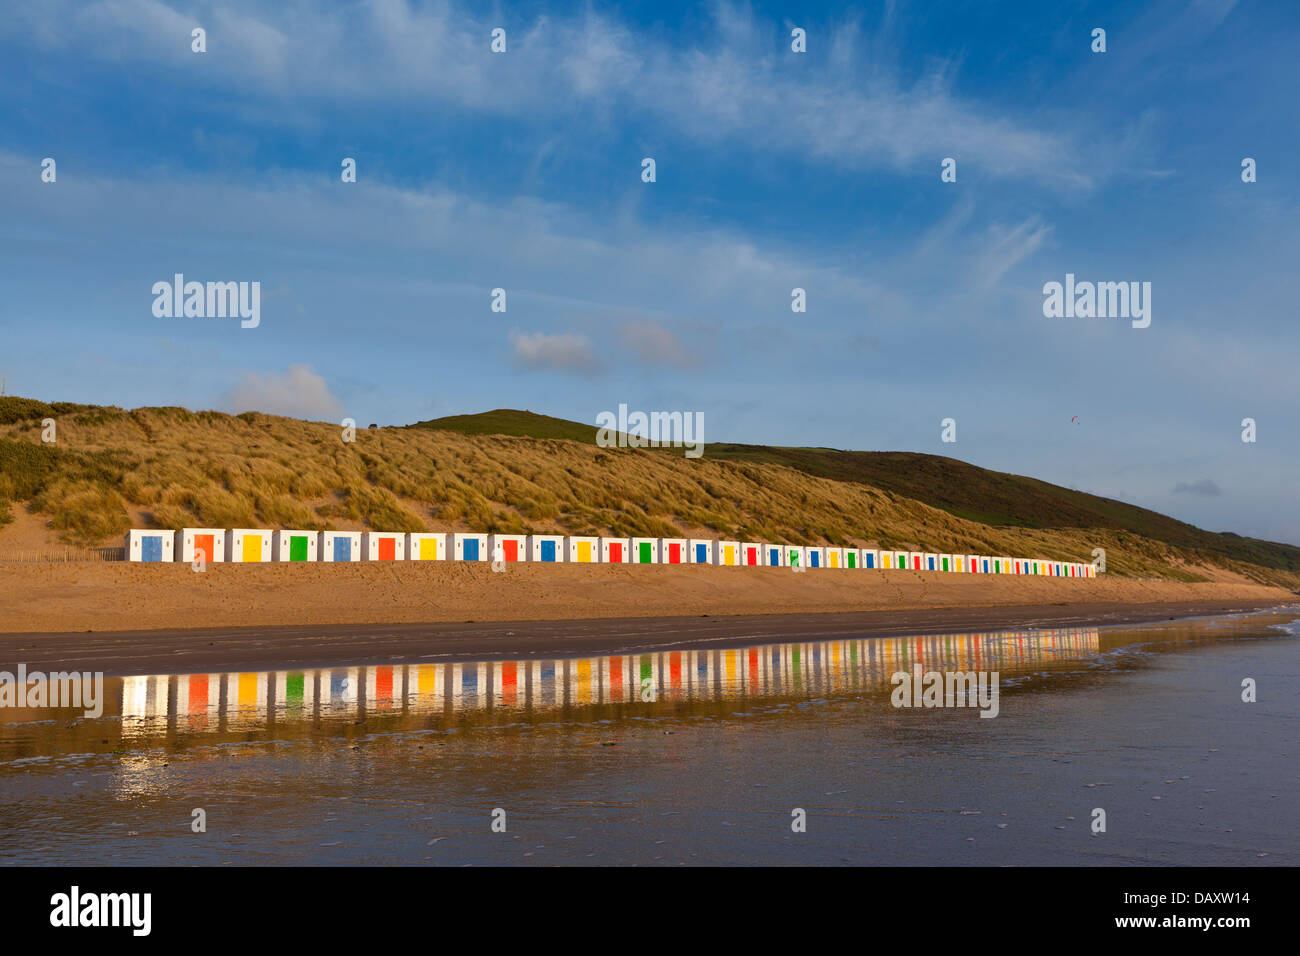 A long line of white beach huts, with coloured doors, stand in front of dunes with reflections in the wet beach - Stock Image